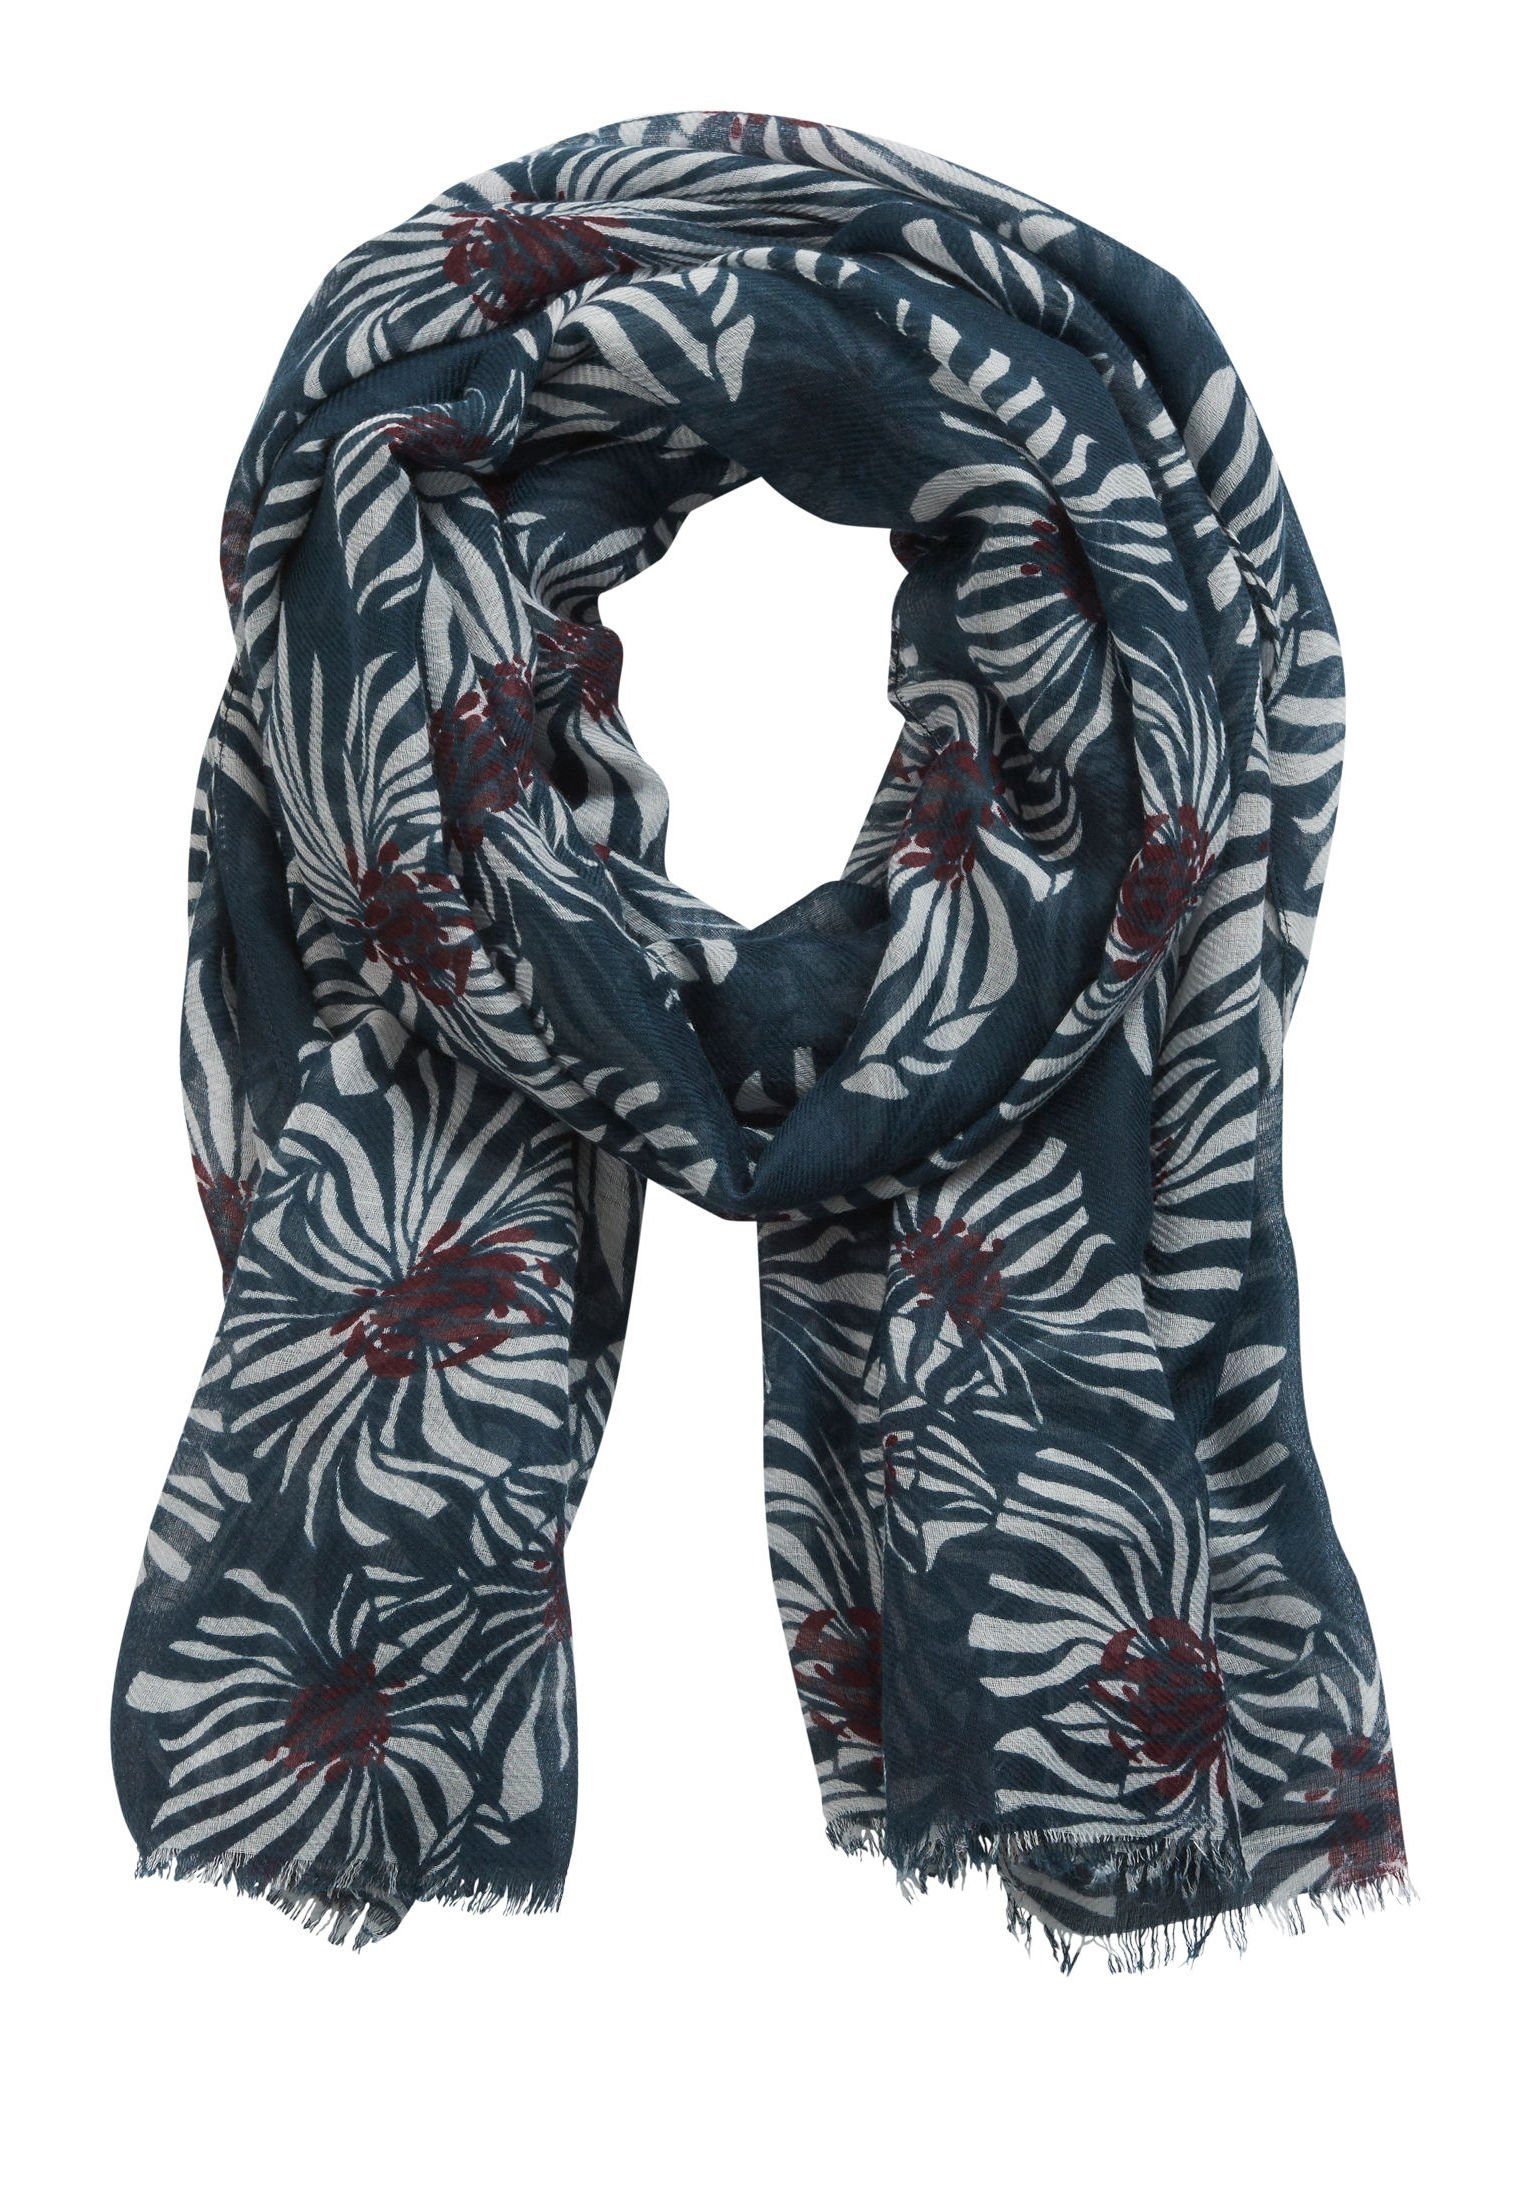 Betty&Co Schal mit floralem Allover Muster